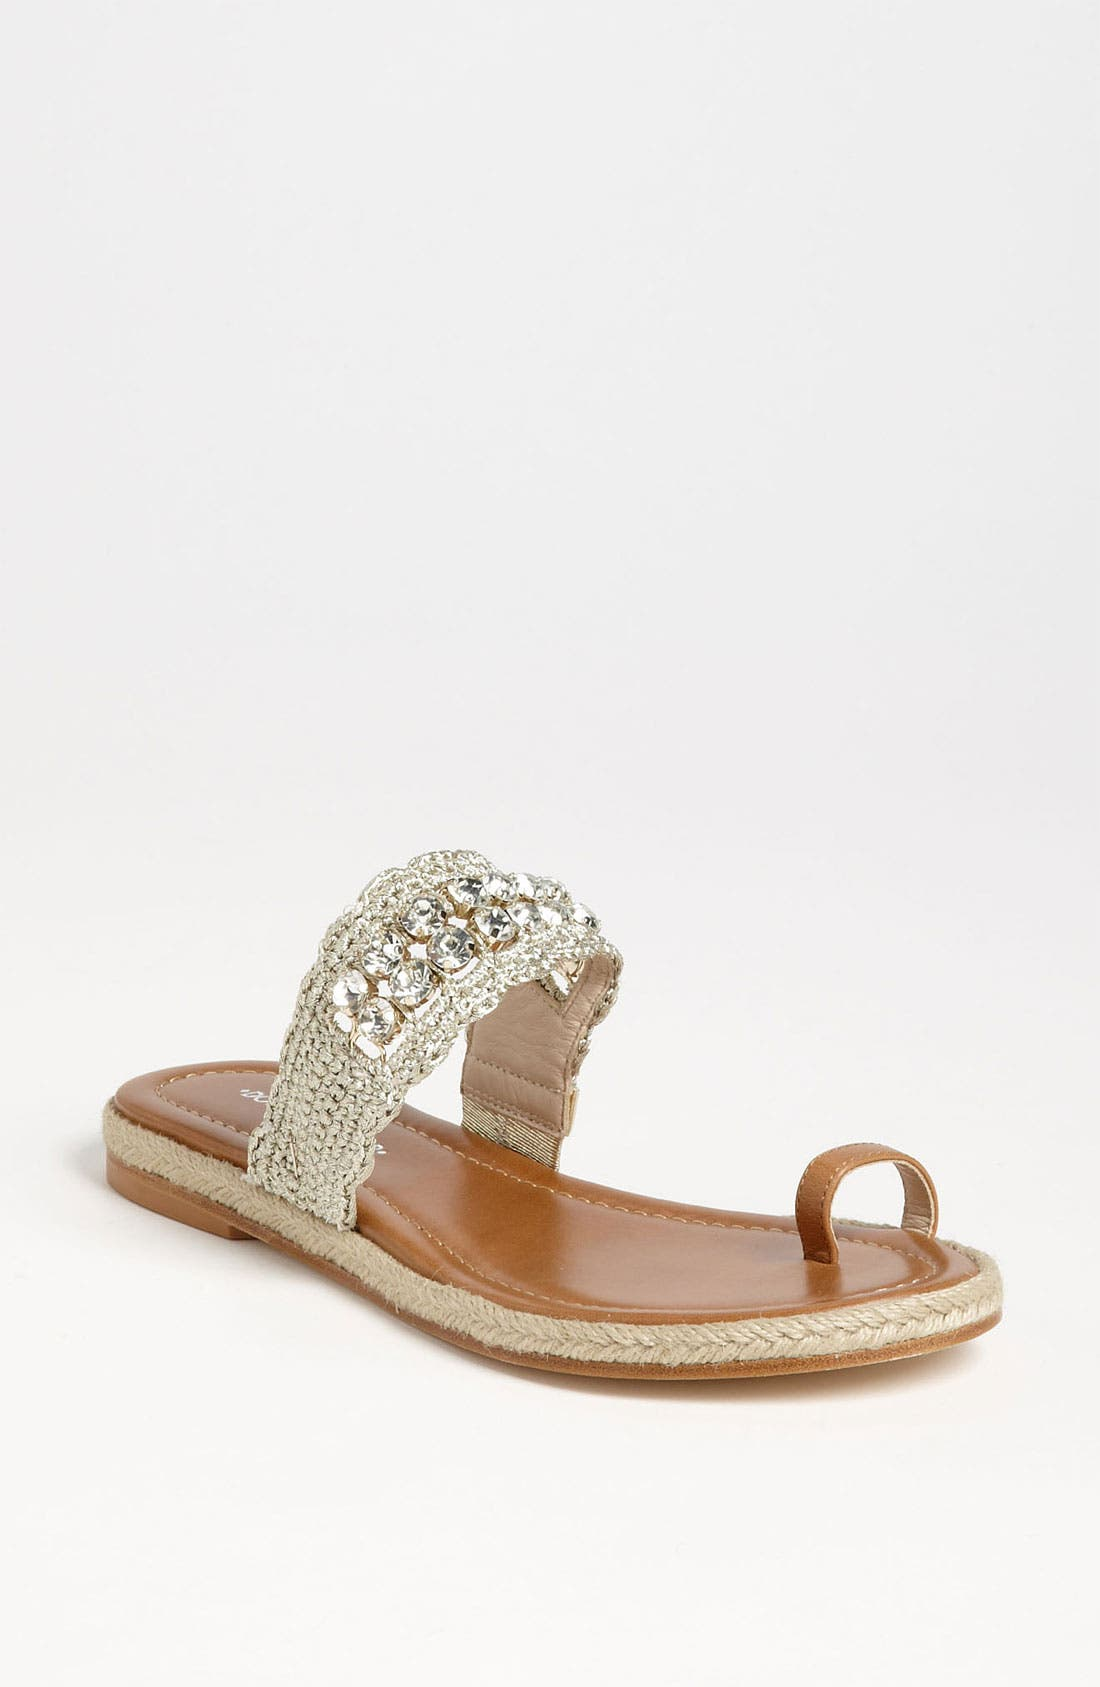 Alternate Image 1 Selected - Donald J Pliner 'Emmie' Sandal